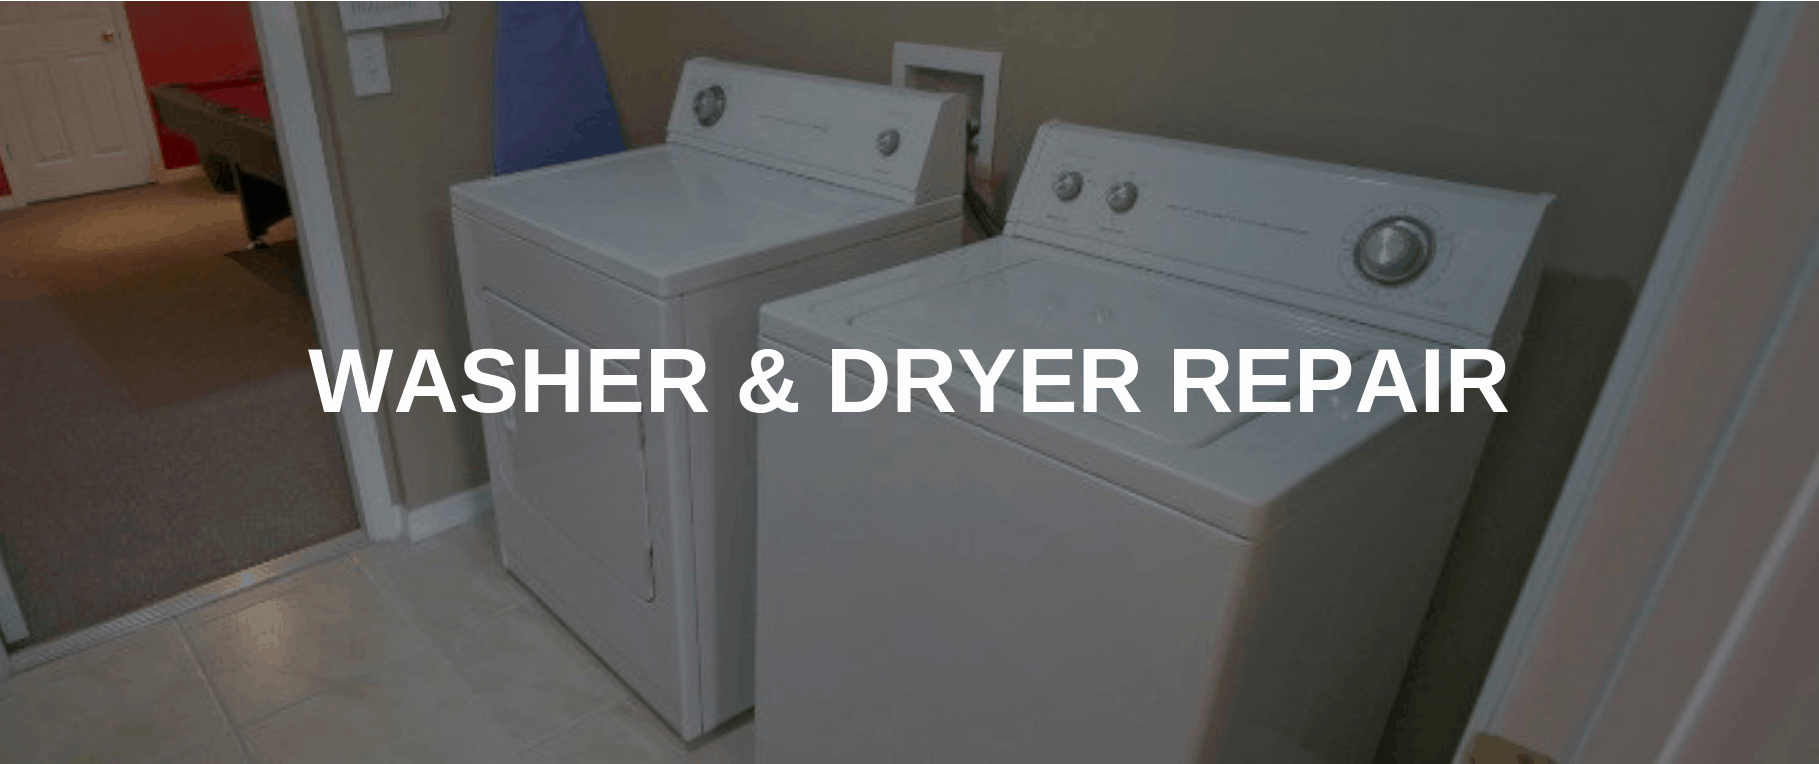 washing machine repair henderson